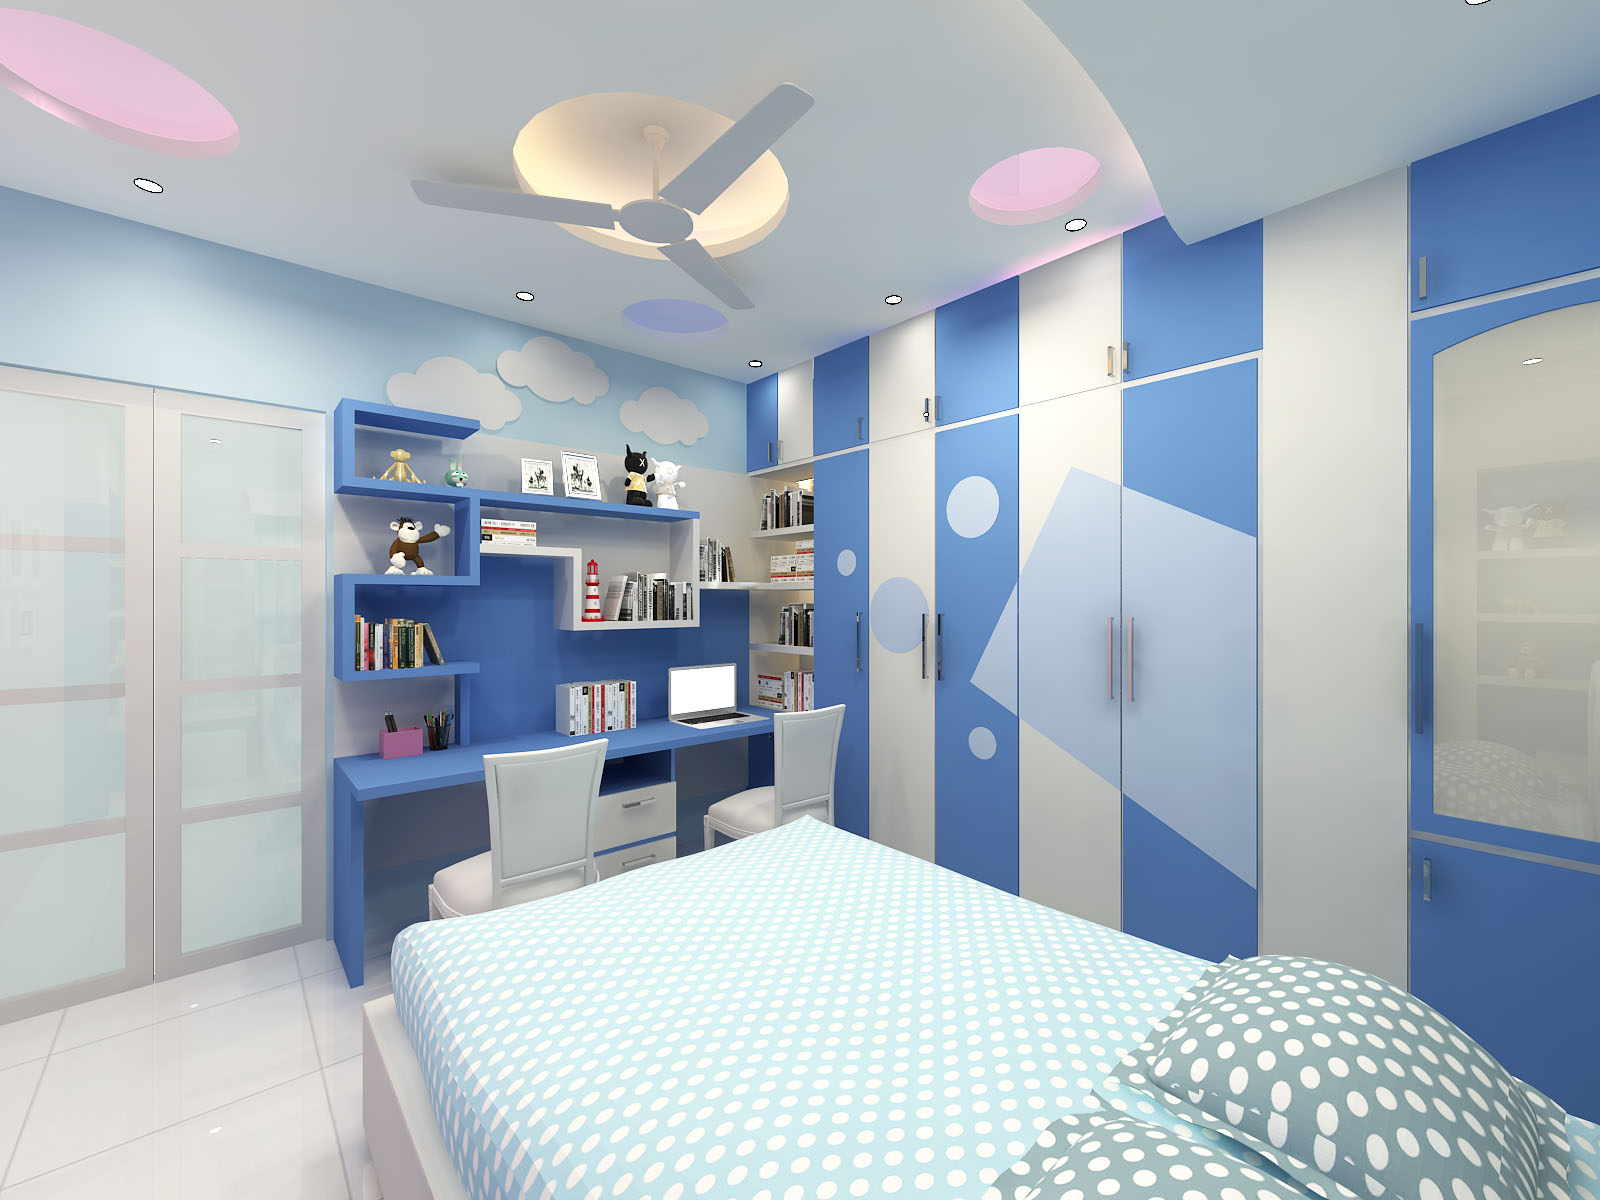 Child's Bedroom Interior Design by Interior Studio Ace